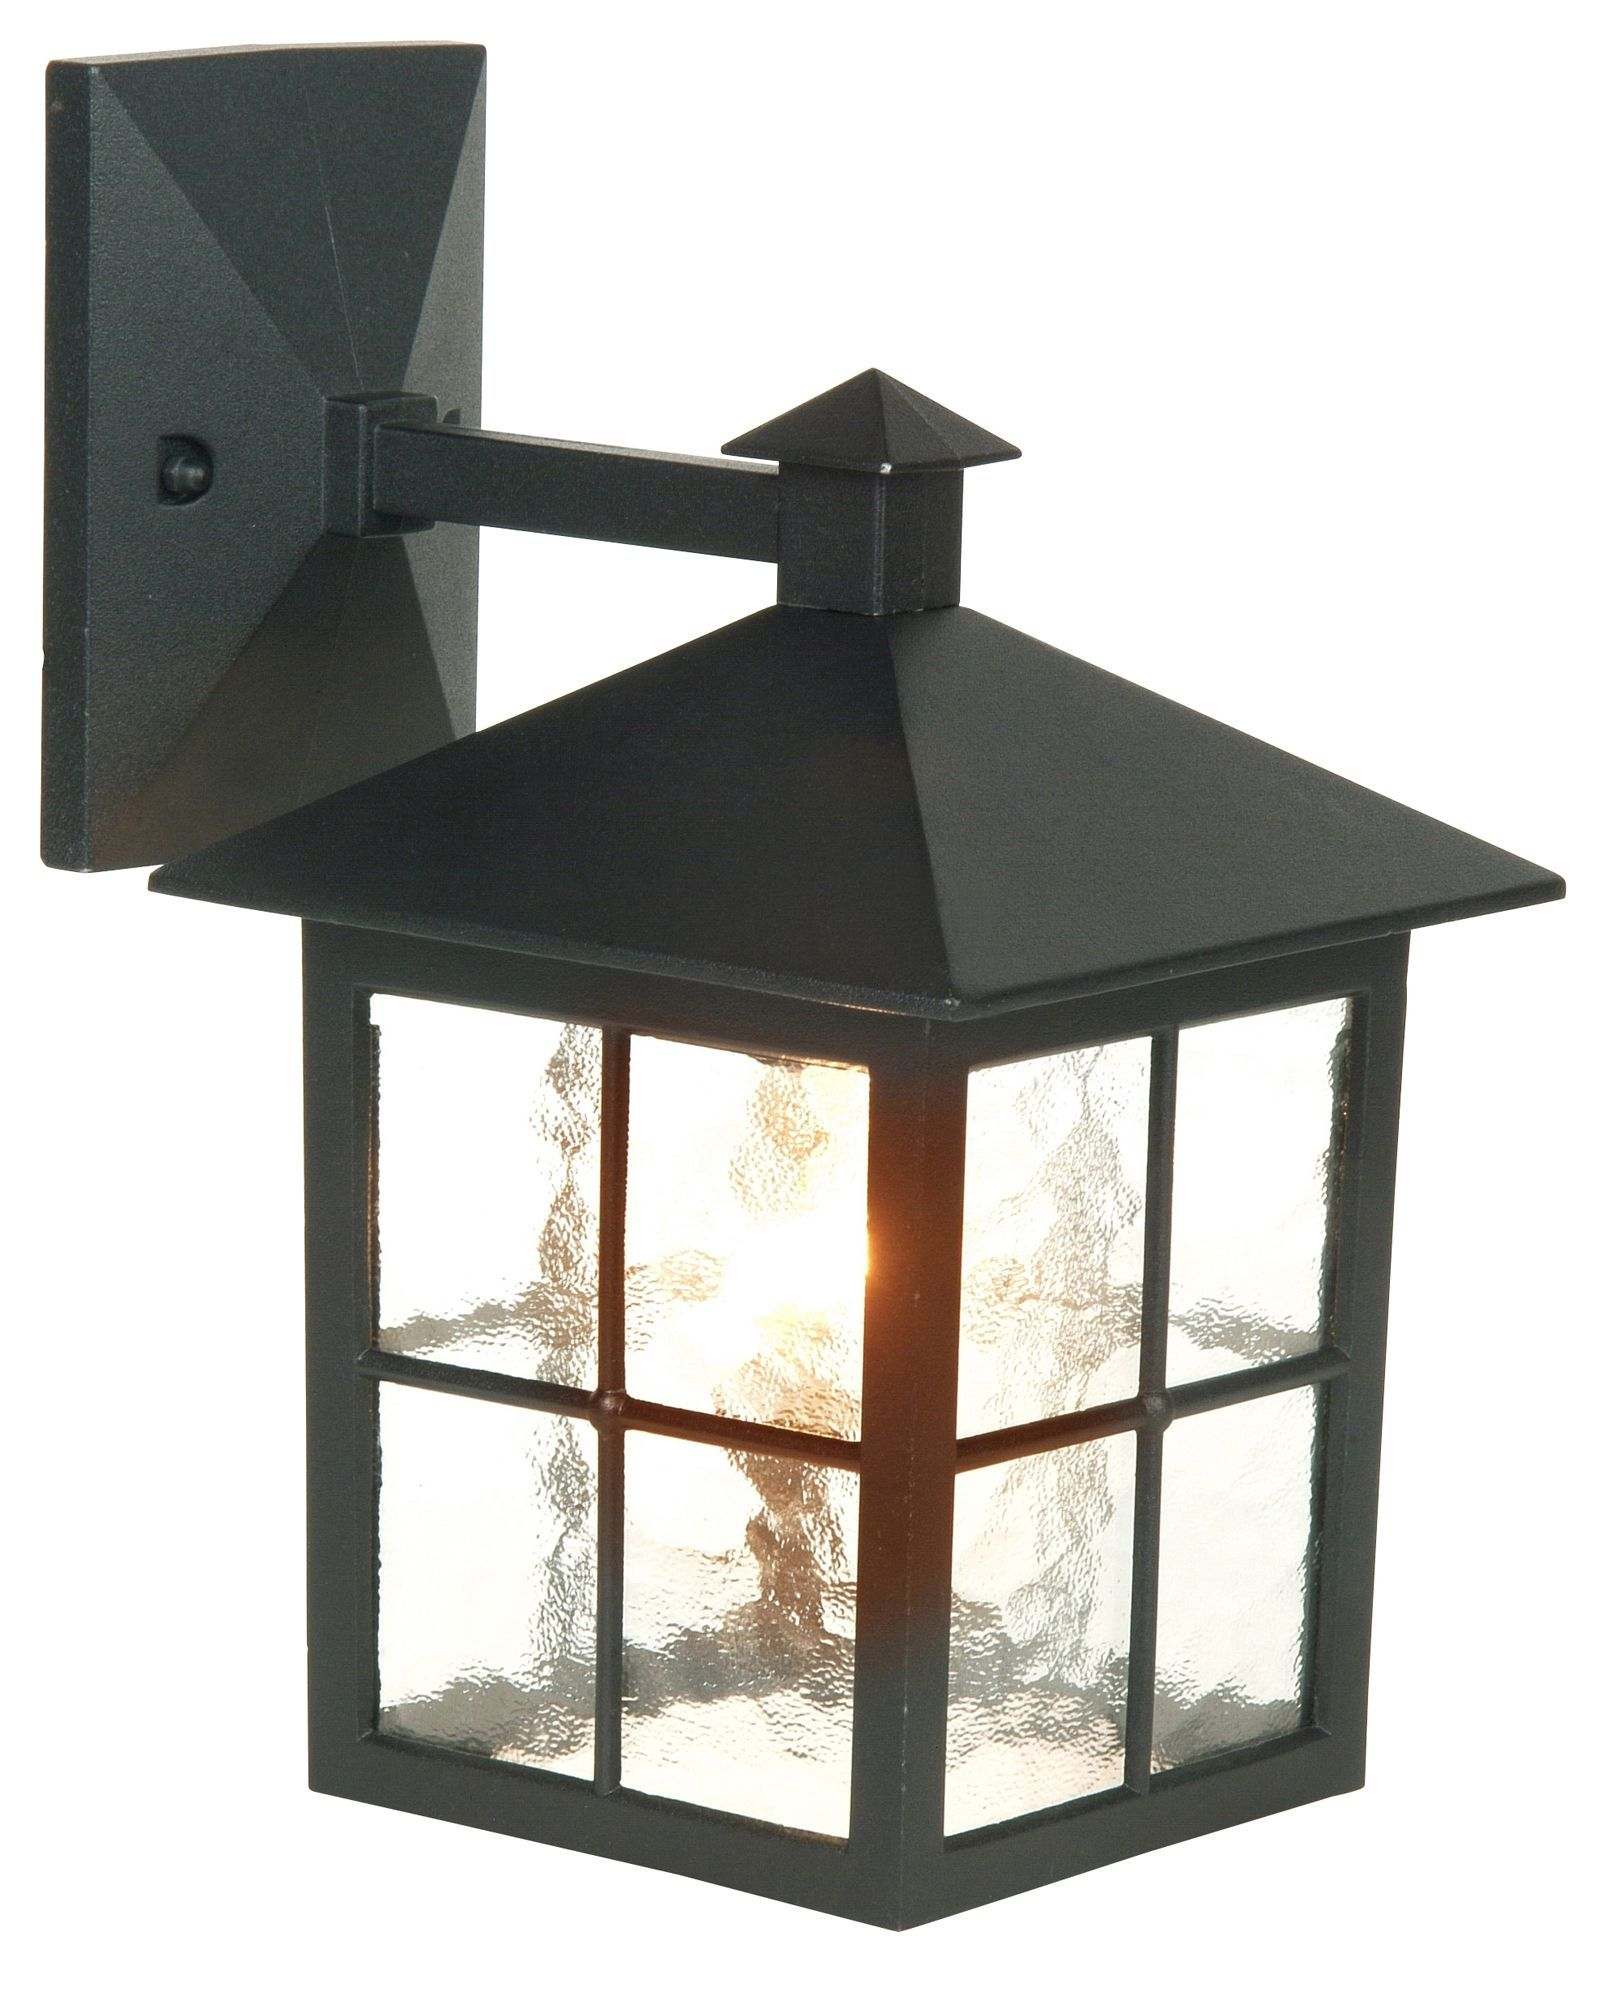 1000+ images about Outside lighting on Pinterest | Outside ...:1000+ images about Outside lighting on Pinterest | Outside lanterns,  Canterbury and Rope lighting,Lighting